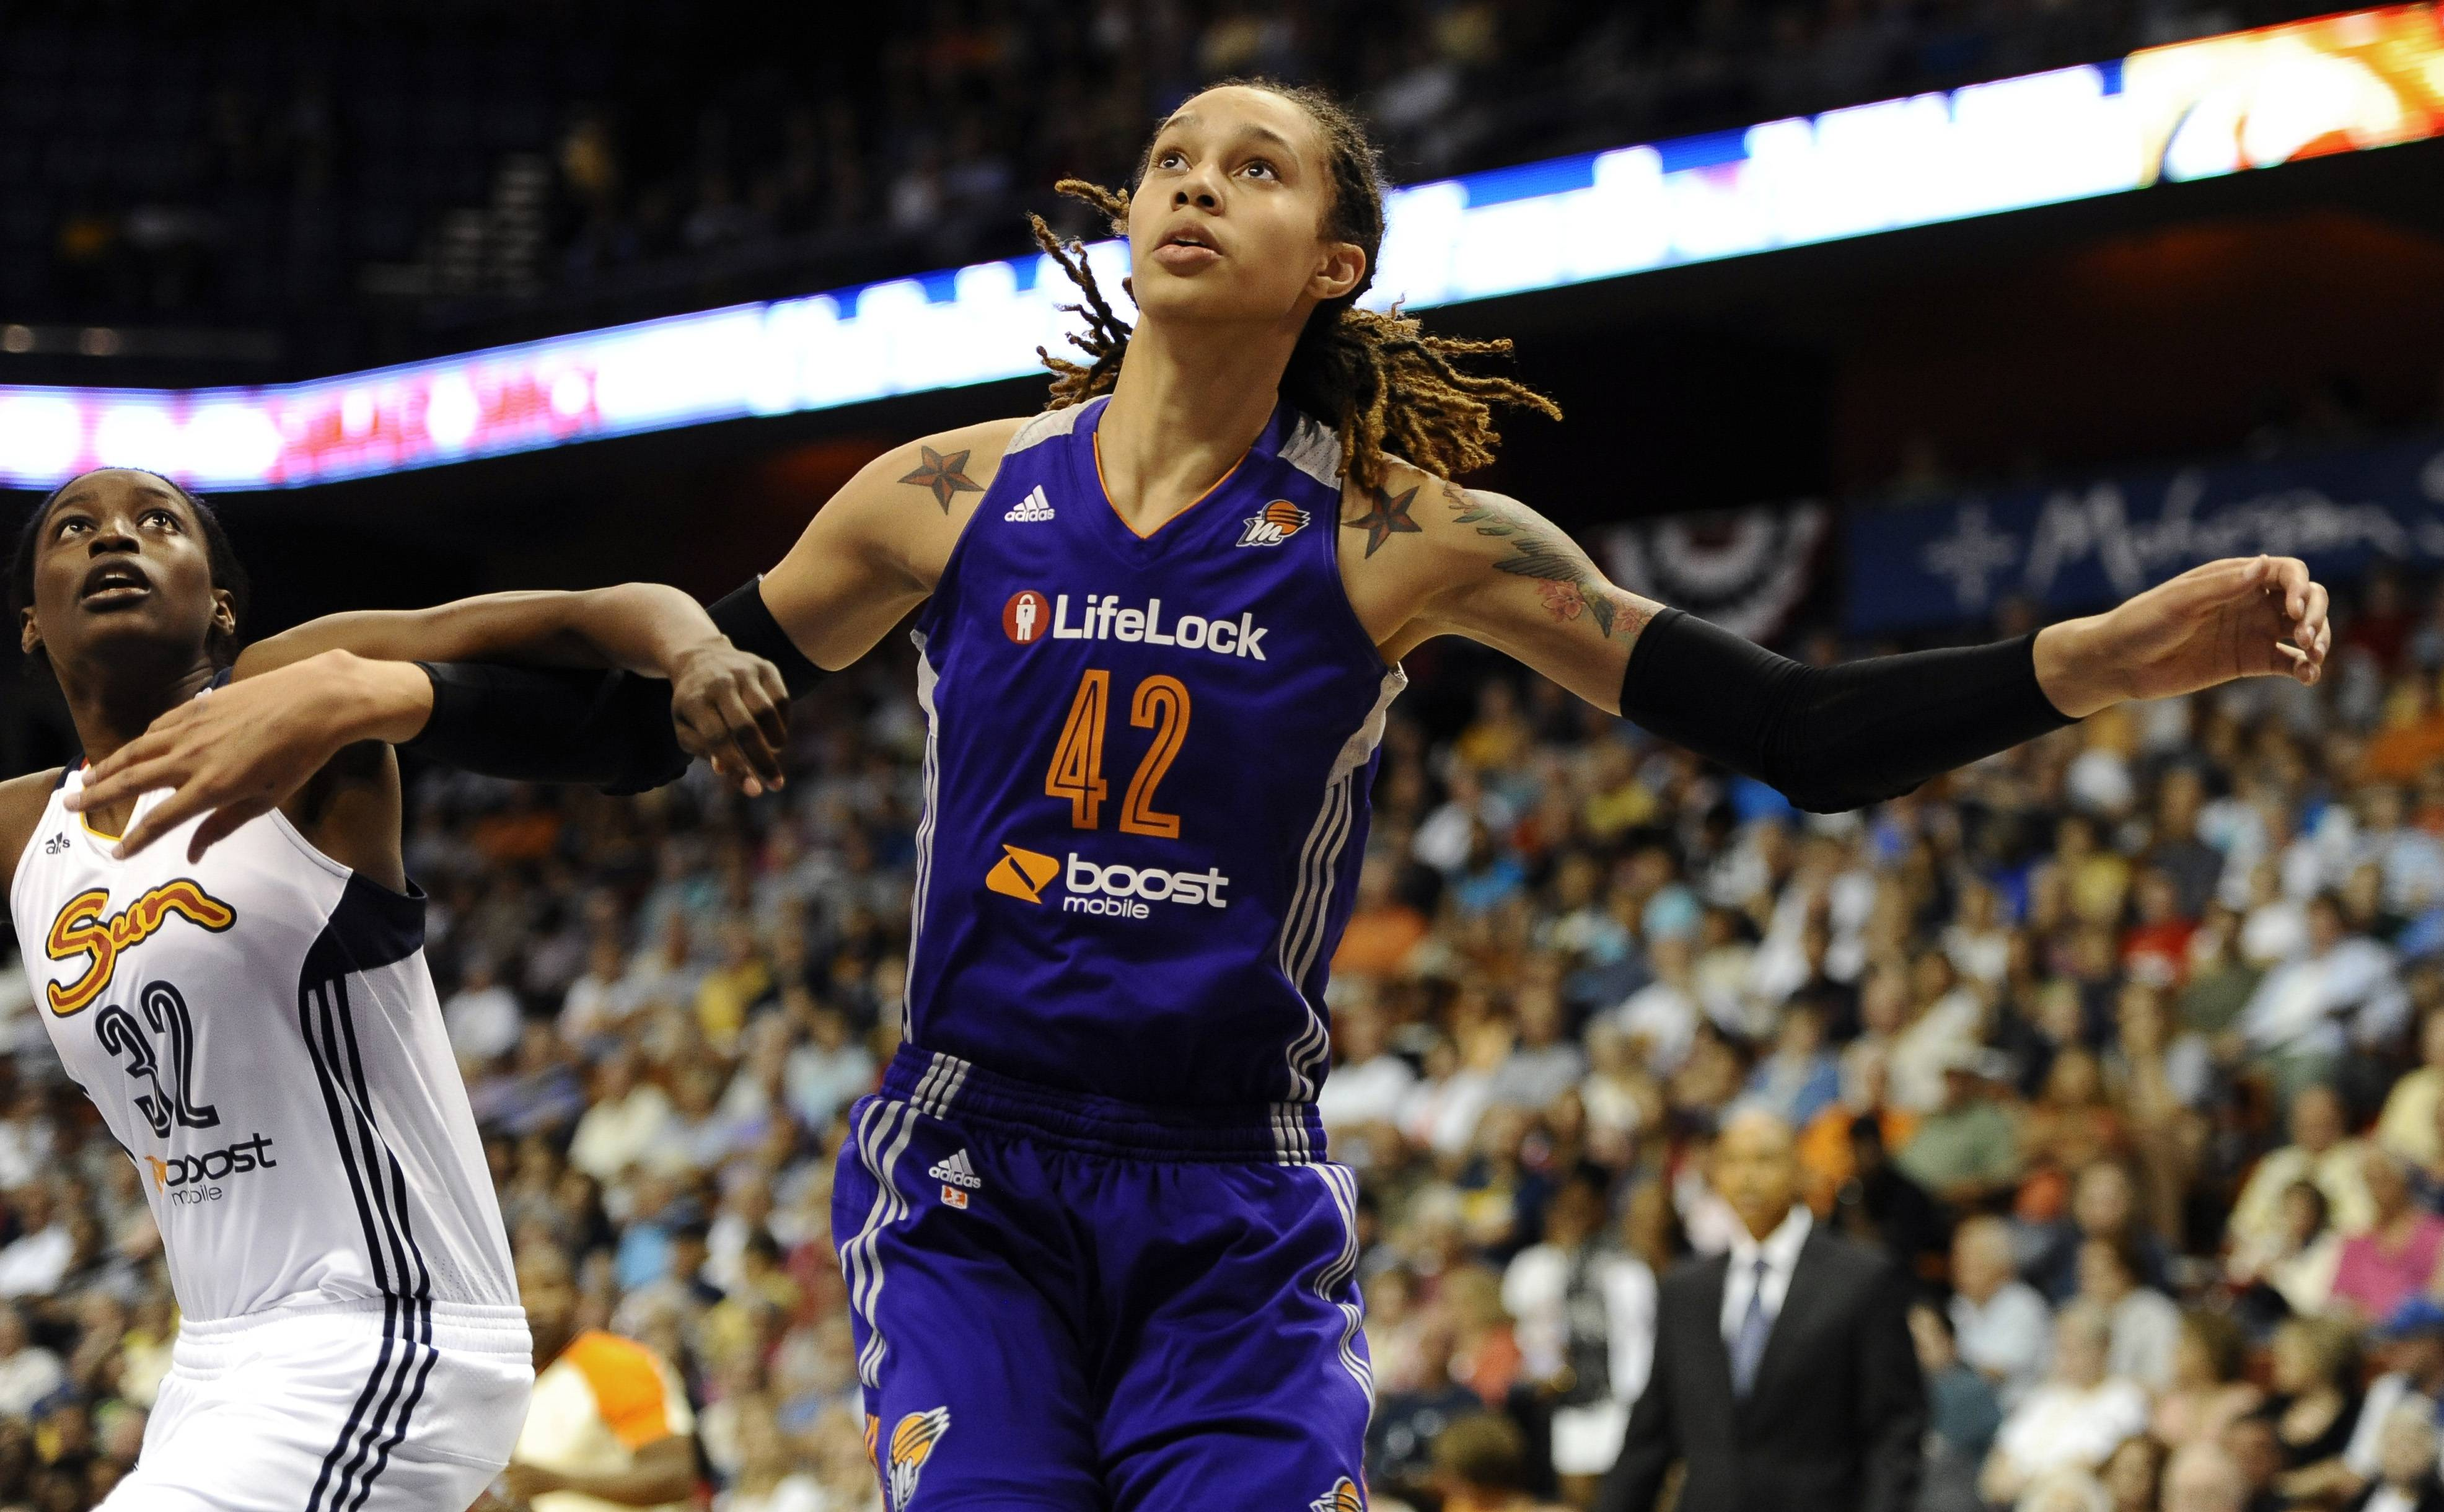 FILE - In this June 29, 2013 file photo, Connecticut Sun's Kalana Greene, left, and Phoenix Mercury's Brittney Griner eye a rebound during the first half of a WNBA basketball game in Uncasville, Conn. The WNBA is launching a campaign to market specifically to the gay, lesbian, bisexual and transgendered community. It's the first league to design such a campaign. Griner, who is one of a handful of WNBA athletes who have publicly identified themselves as lesbian, was happy the league was embracing the community.